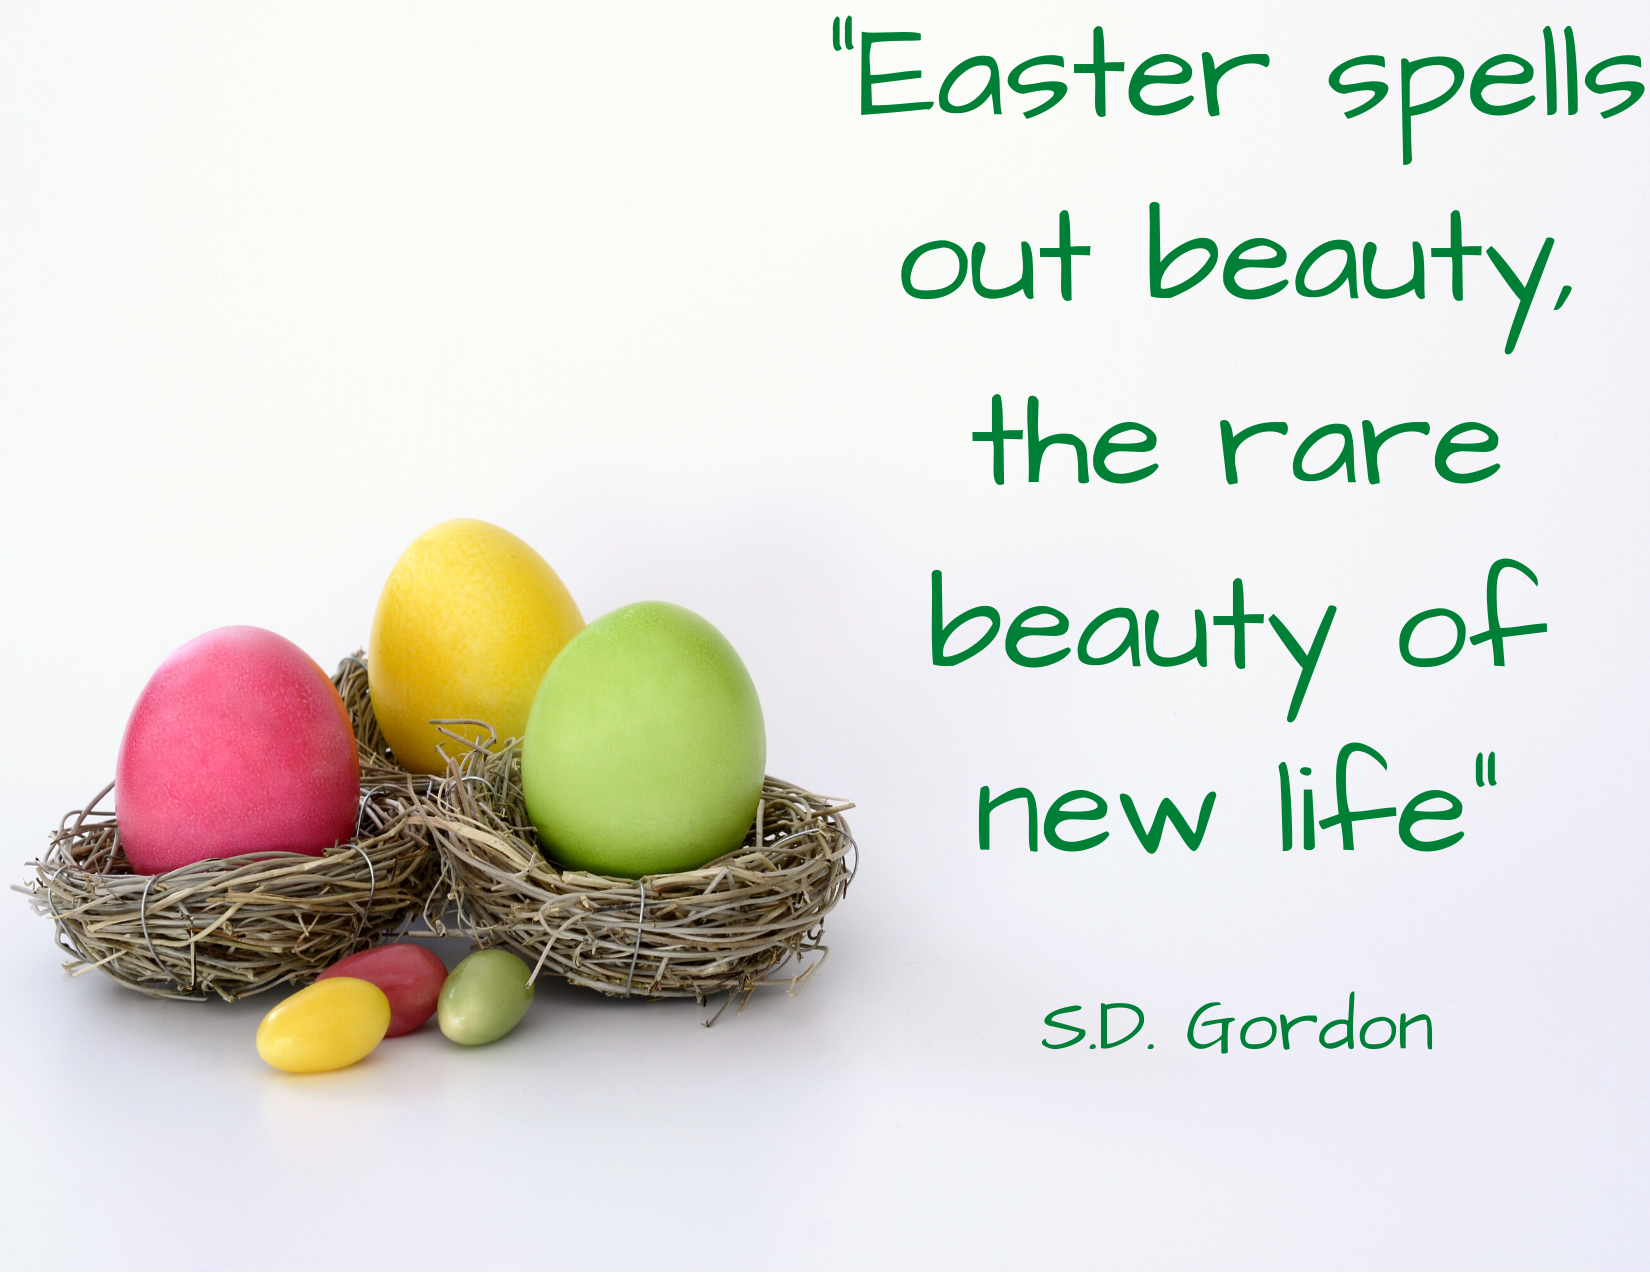 _Easter spells out beauty, the rare beauty of new life _